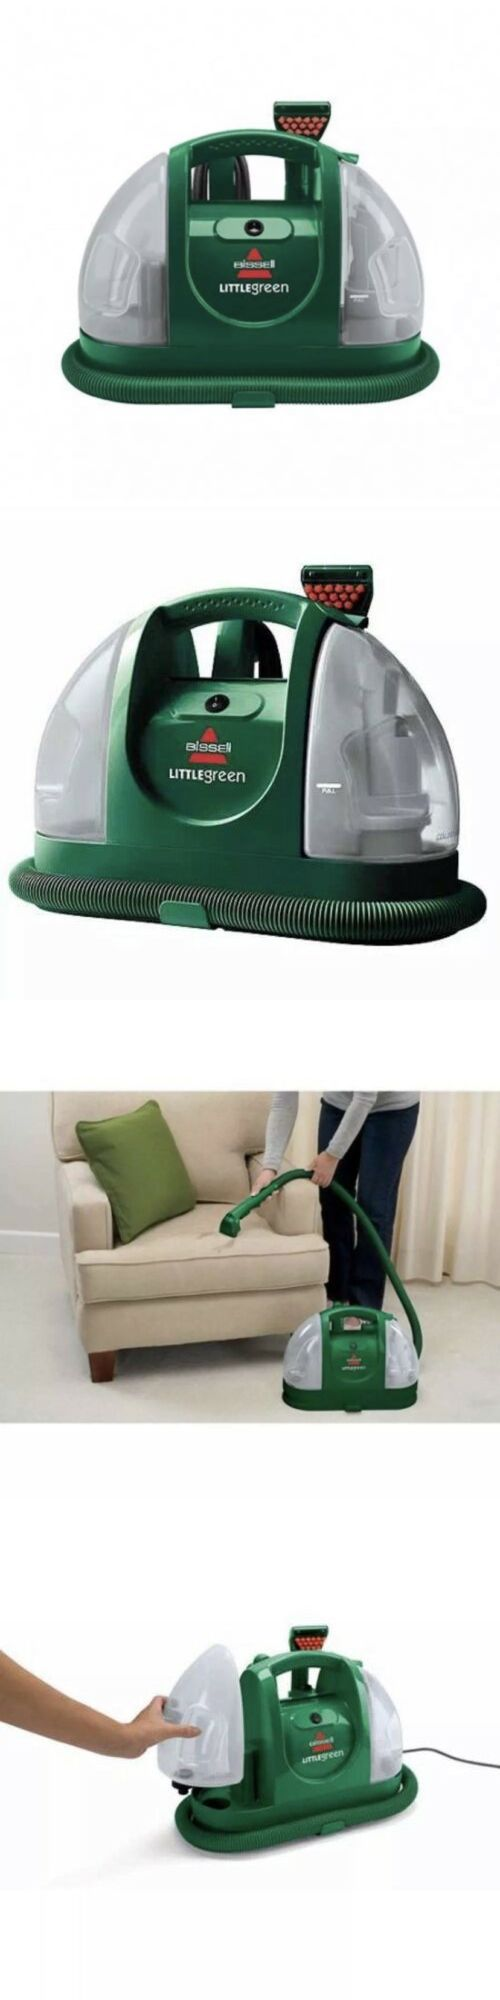 Carpet Shampooers 177746 Bissell Little Green Spot And Stain Cleaning Machine Carpets Couch Car More Bu Carpet Shampooers Green Spot Carpet Cleaners